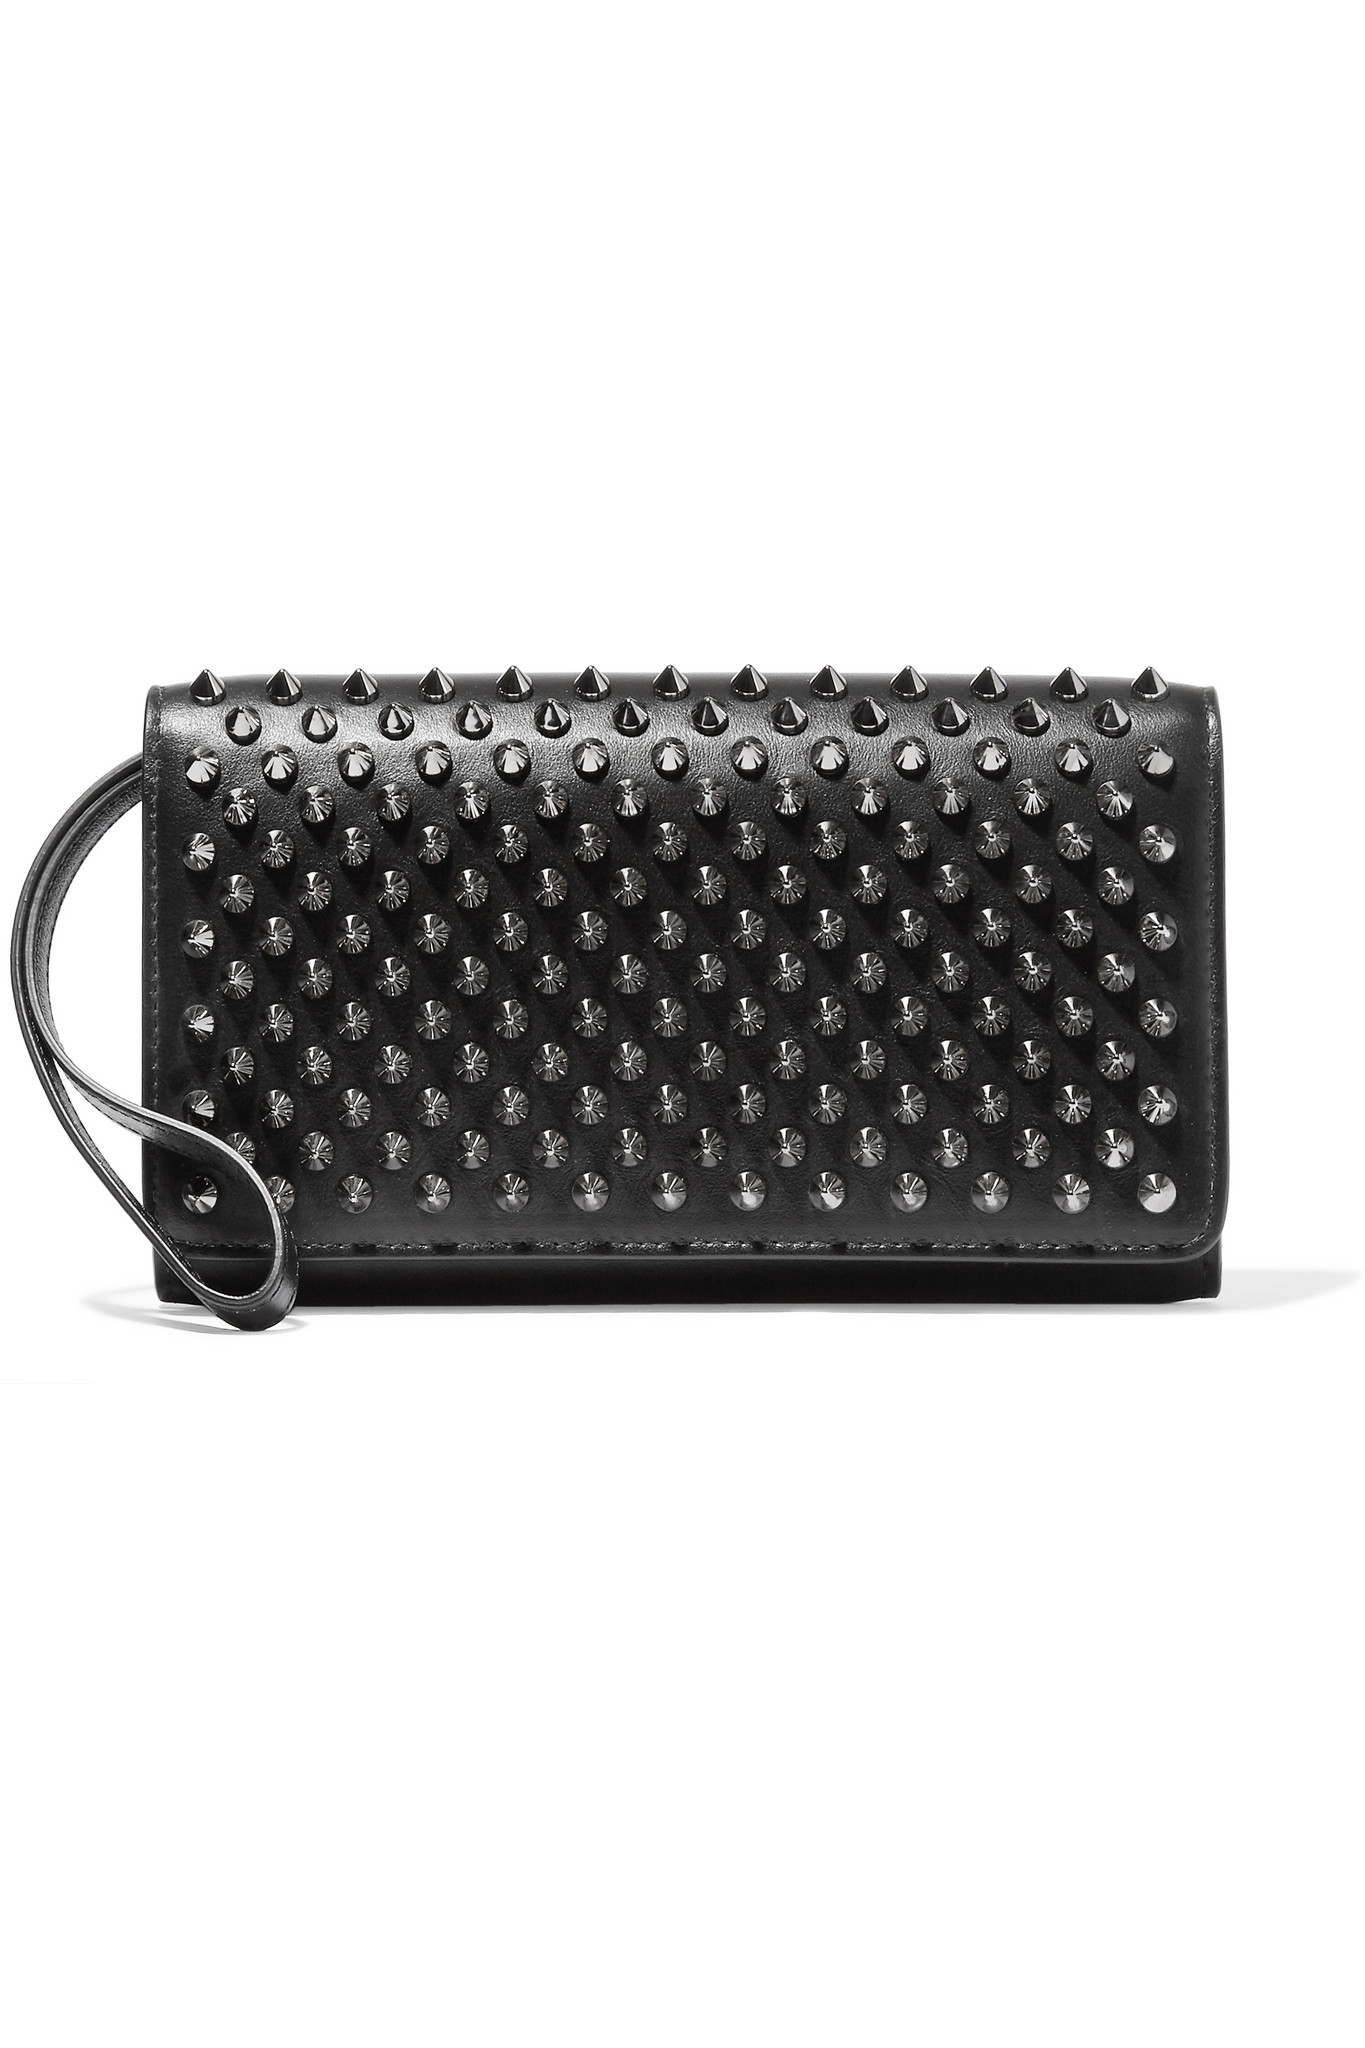 Le Meilleur Christian Louboutin Macaron Spiked Leather Wallet In Black Ce Mois Ci